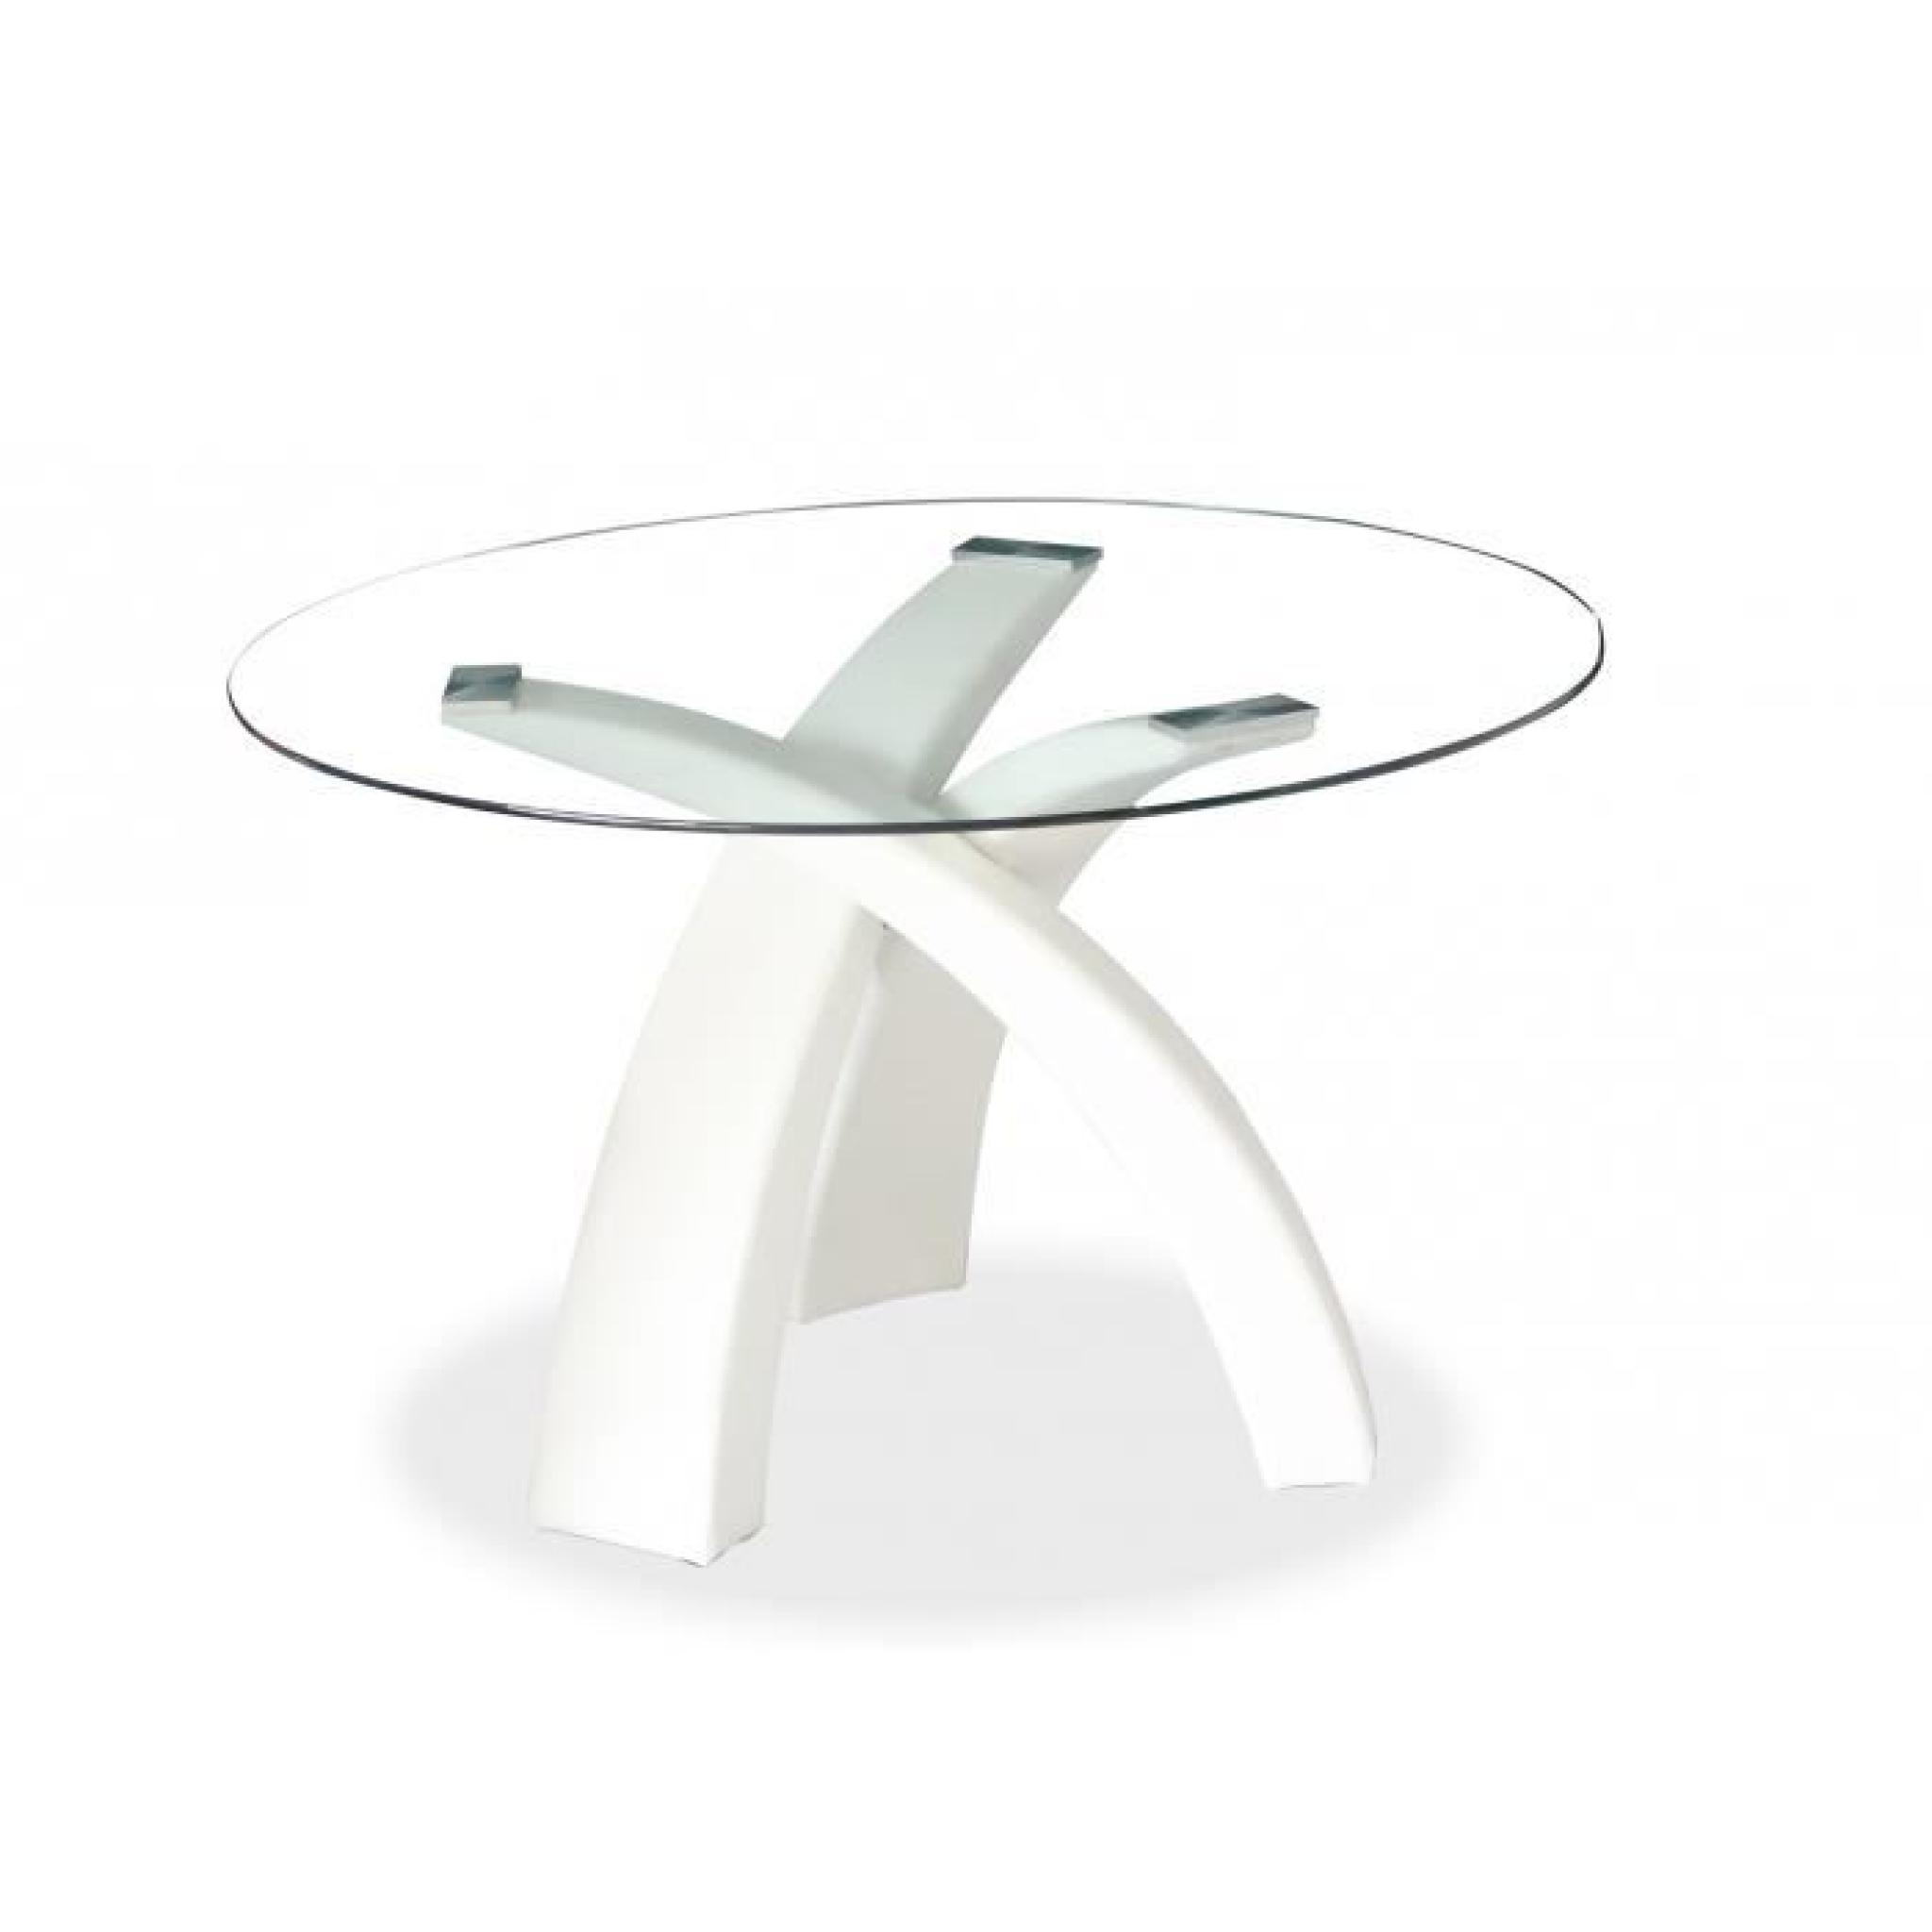 Table manger ronde blanche gore achat vente table for Table a manger ronde blanche